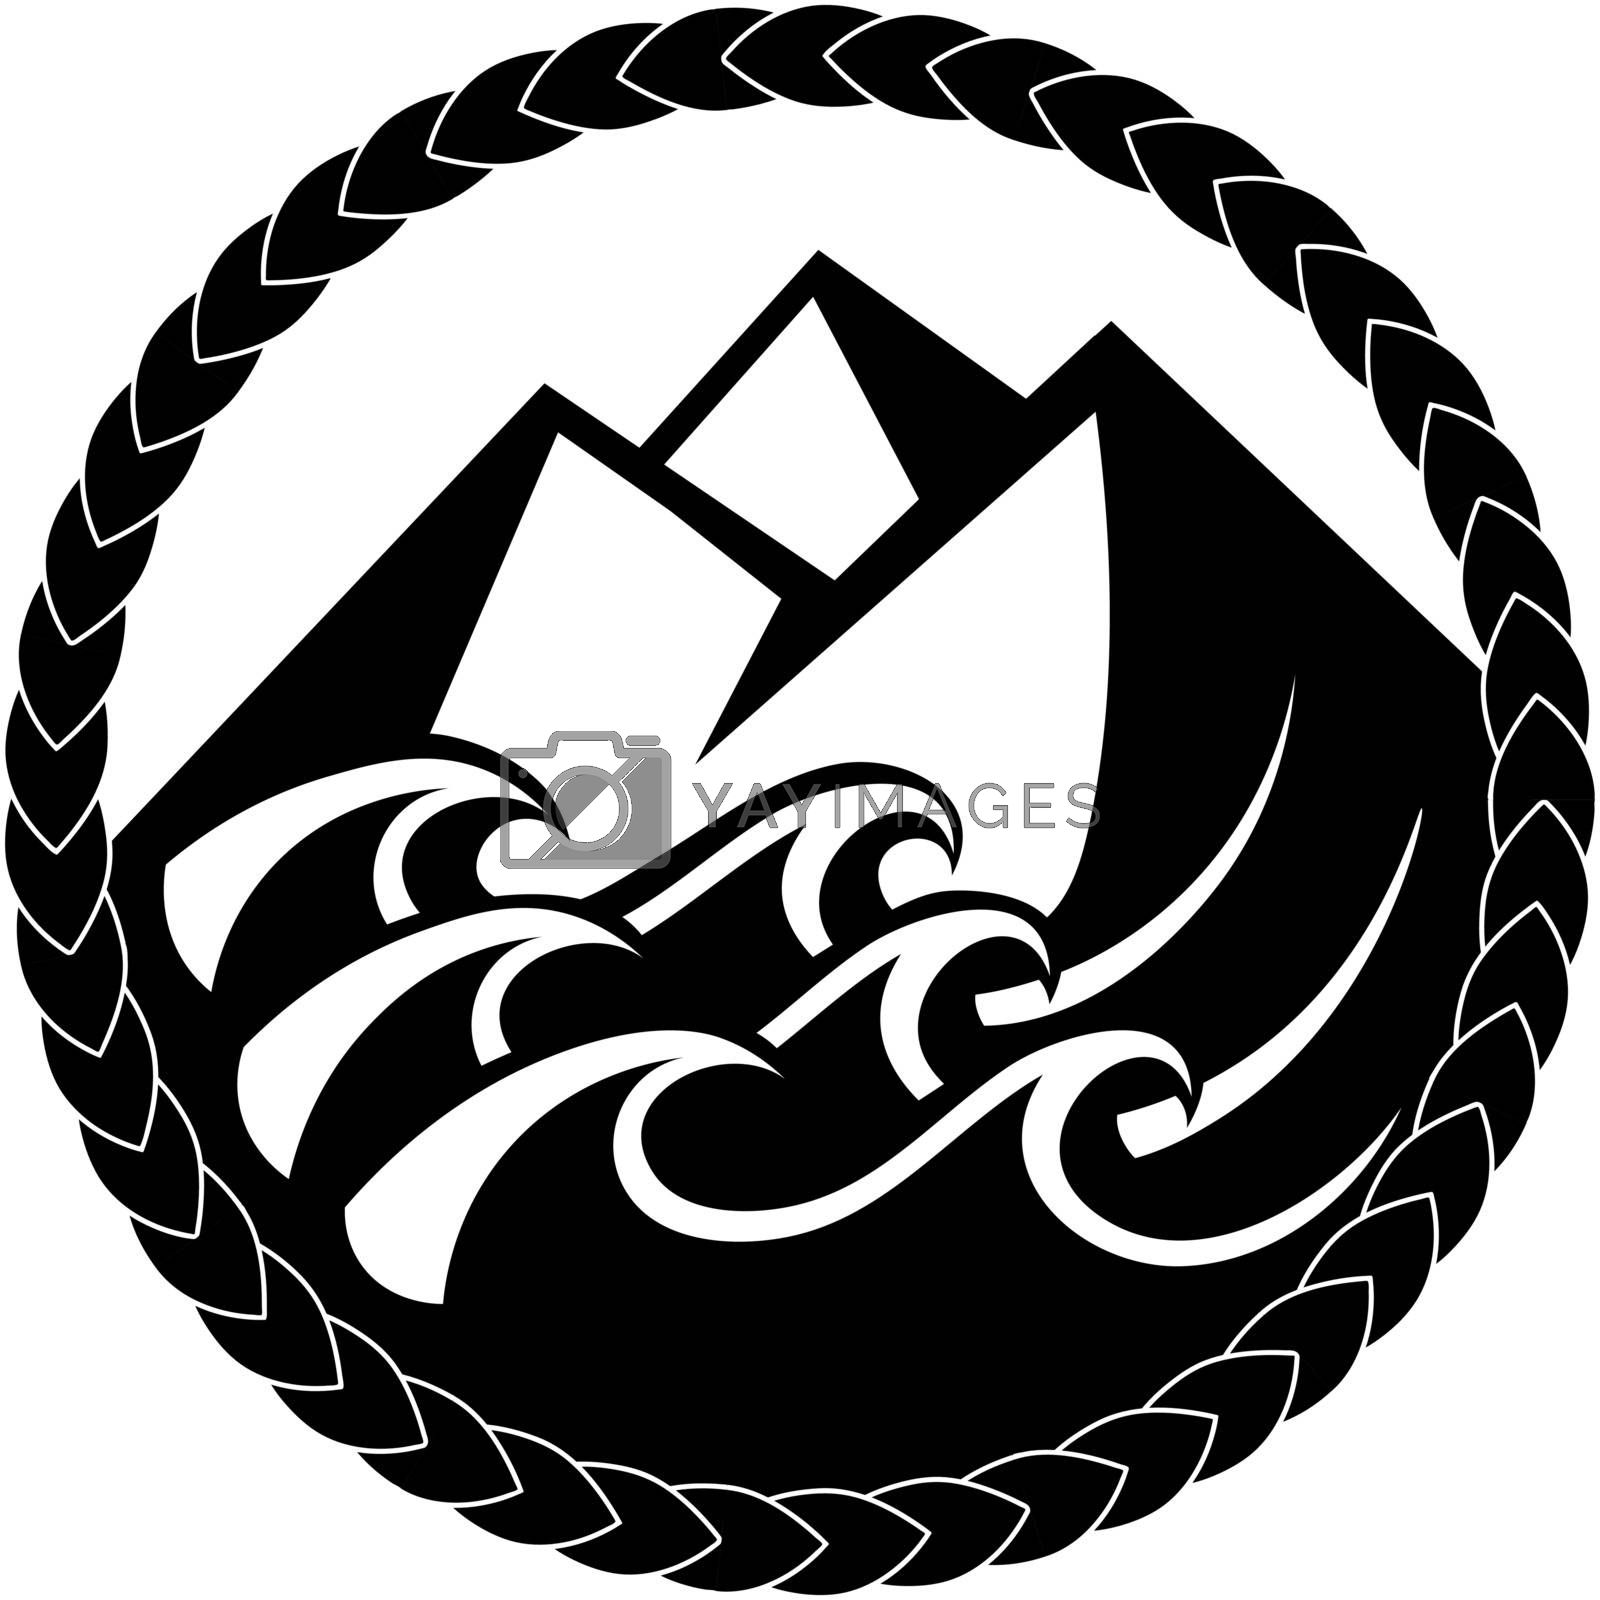 black and white icon in celtic or scandinavian tribal style with mountains and sea waves in knotted frame